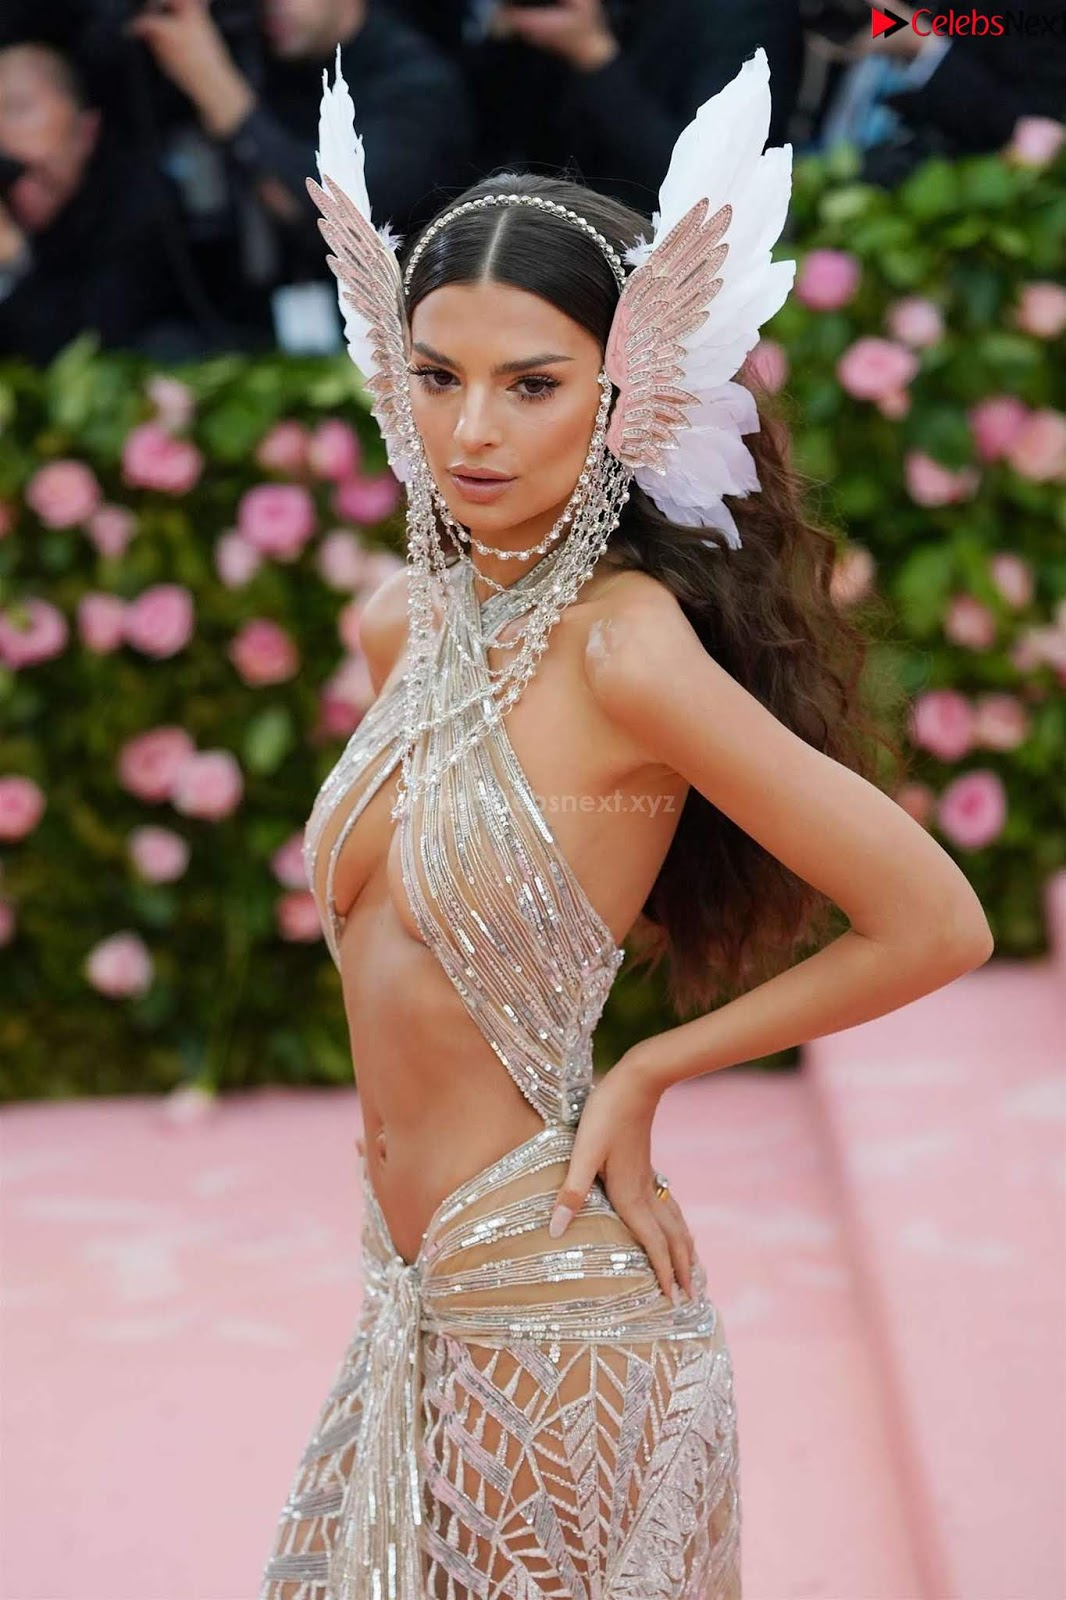 Emily Ratajkowski Expising her beautiful tits at 2019 MET Gala in NYC CelebSneXt.xyz Exclusive Pics